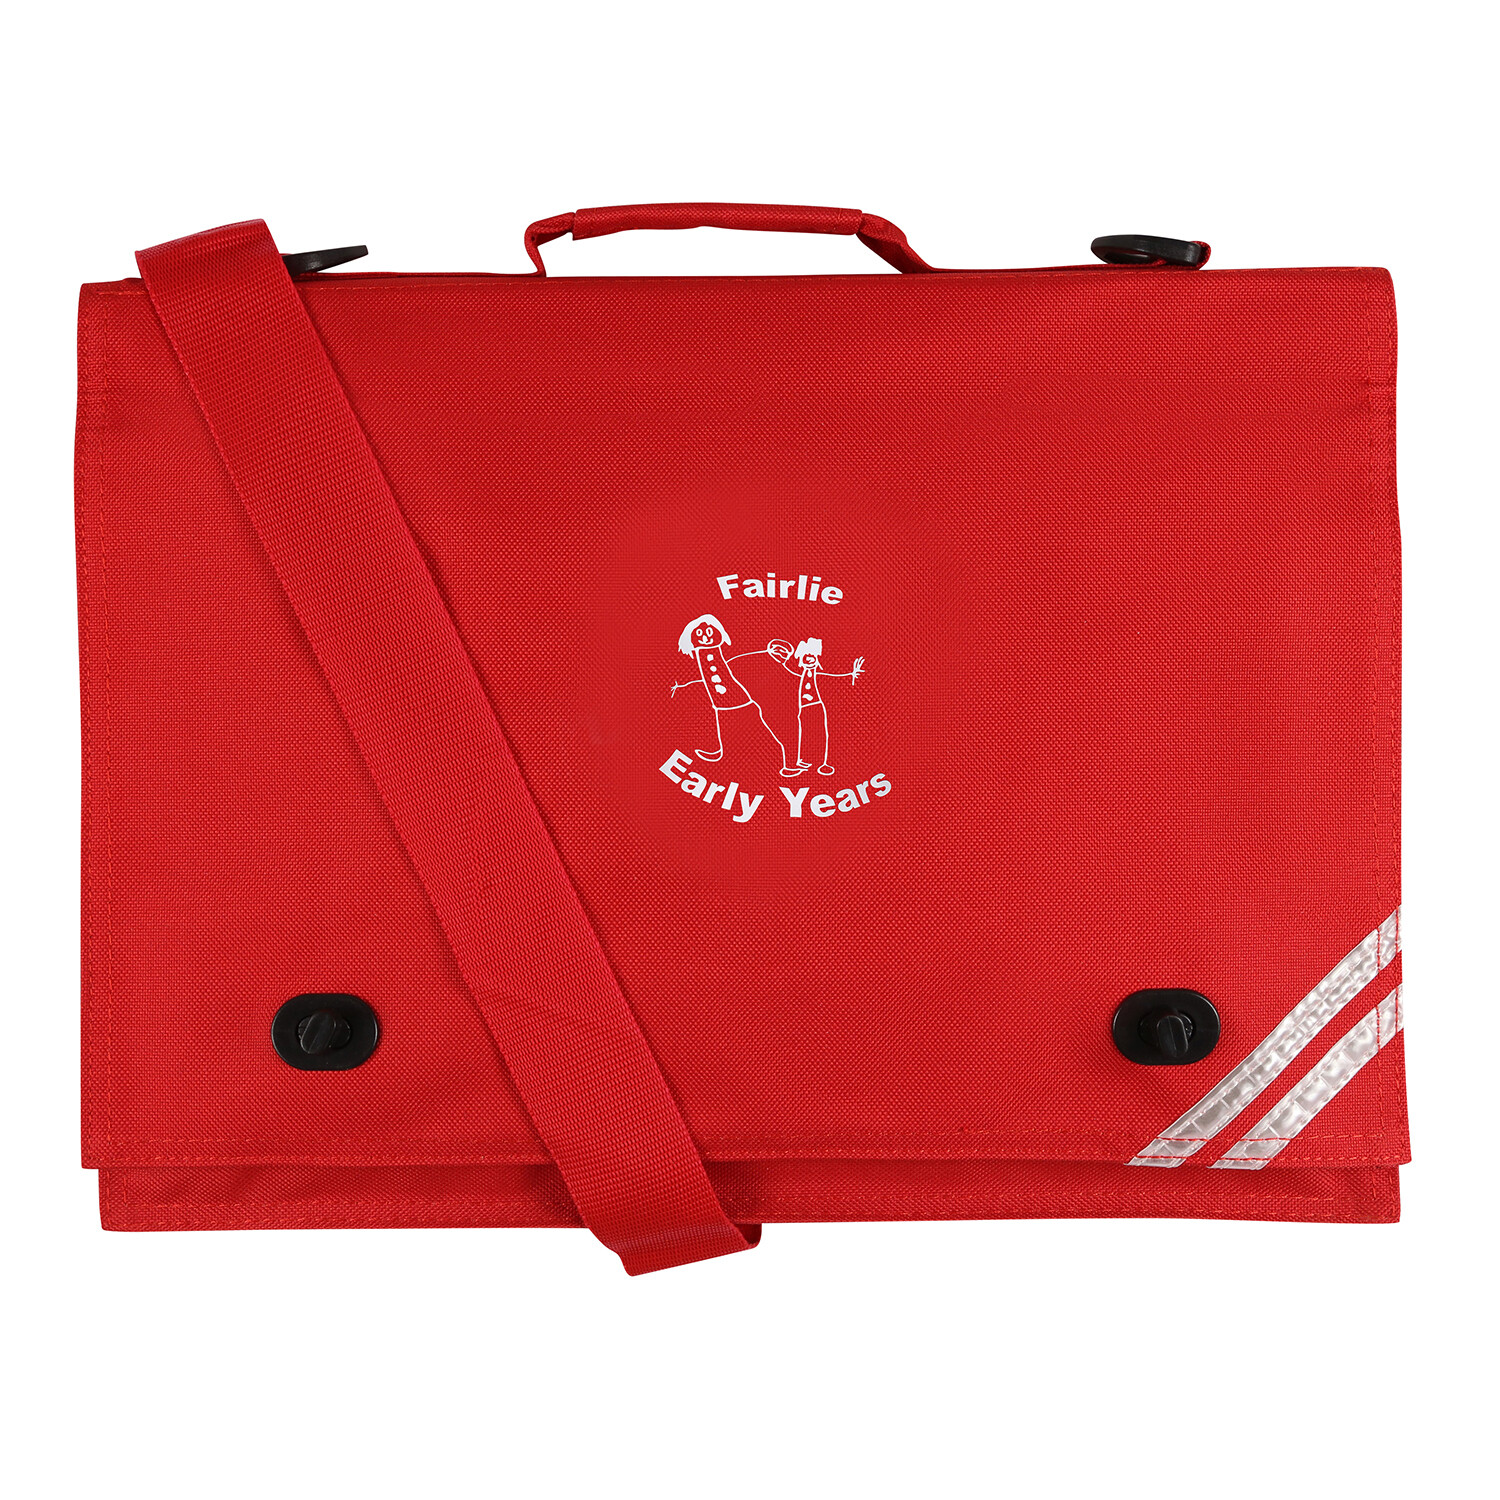 Fairlie Early Years Document Case